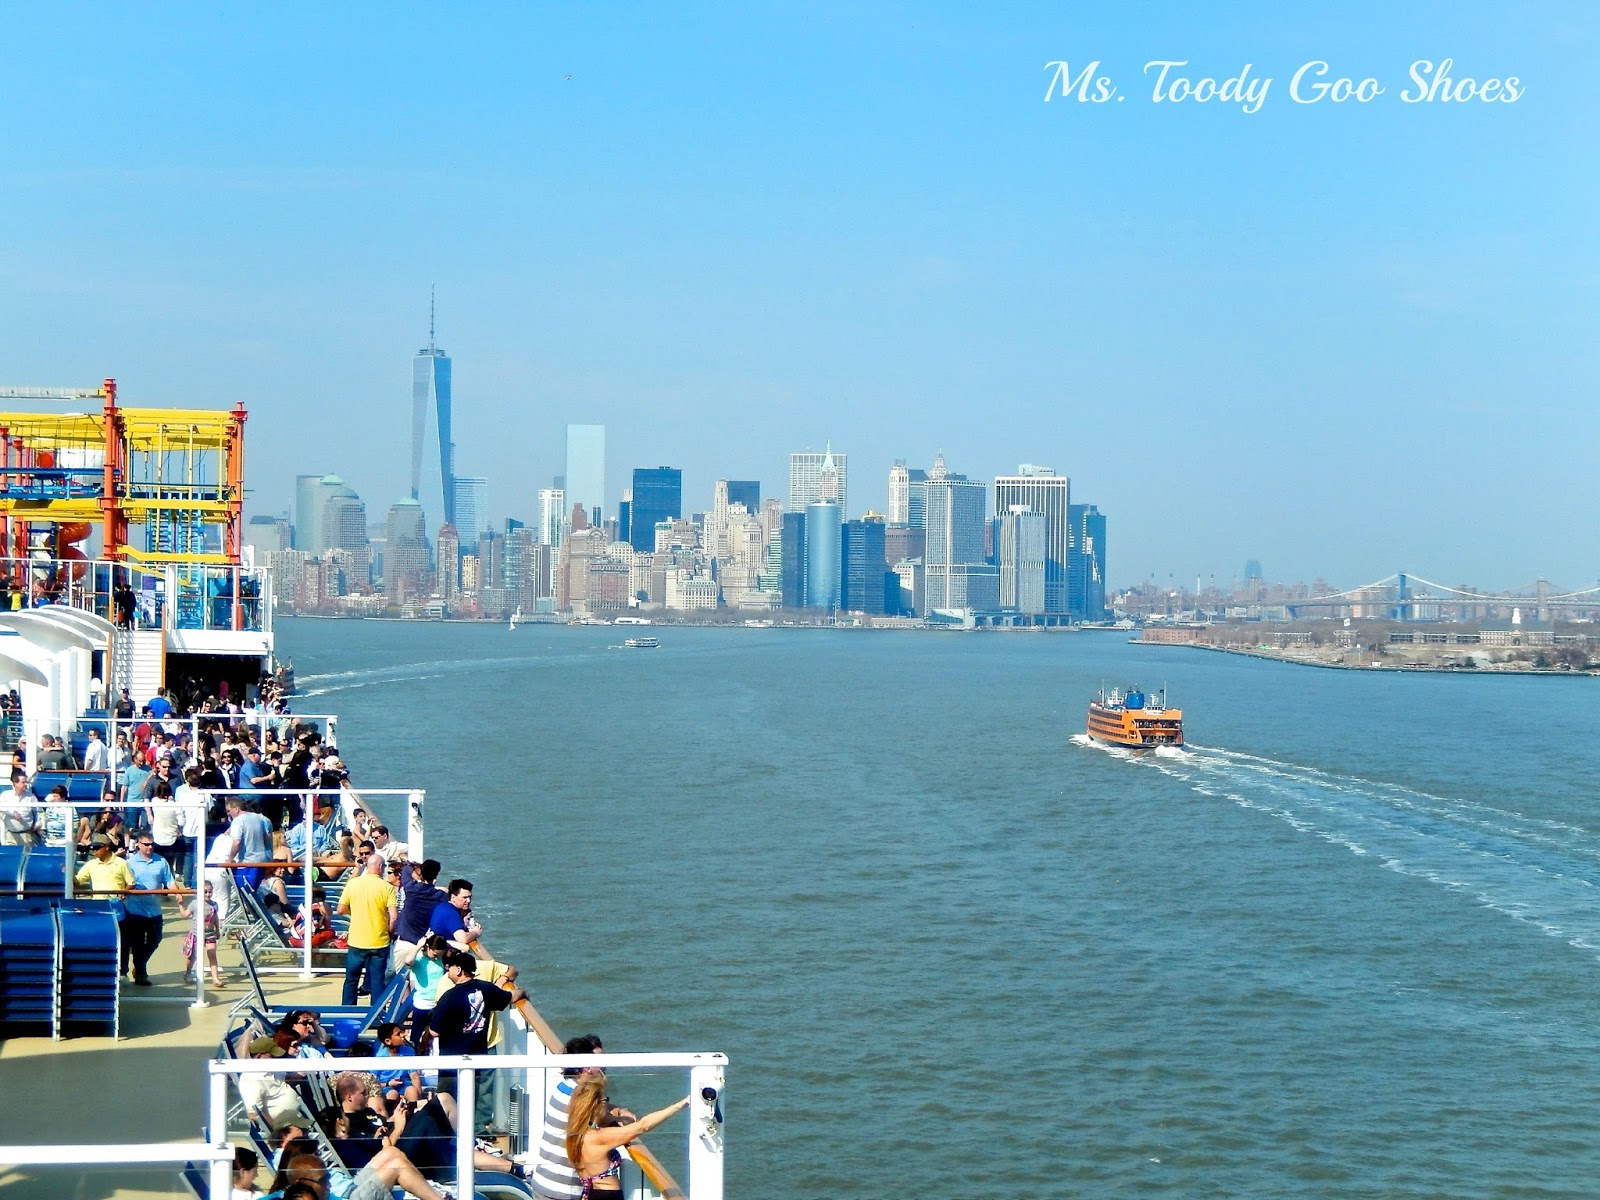 Ms Toody Goo Shoes Spring BreakAway Our Cruise Ship Departs - What cruise ships leave from nyc